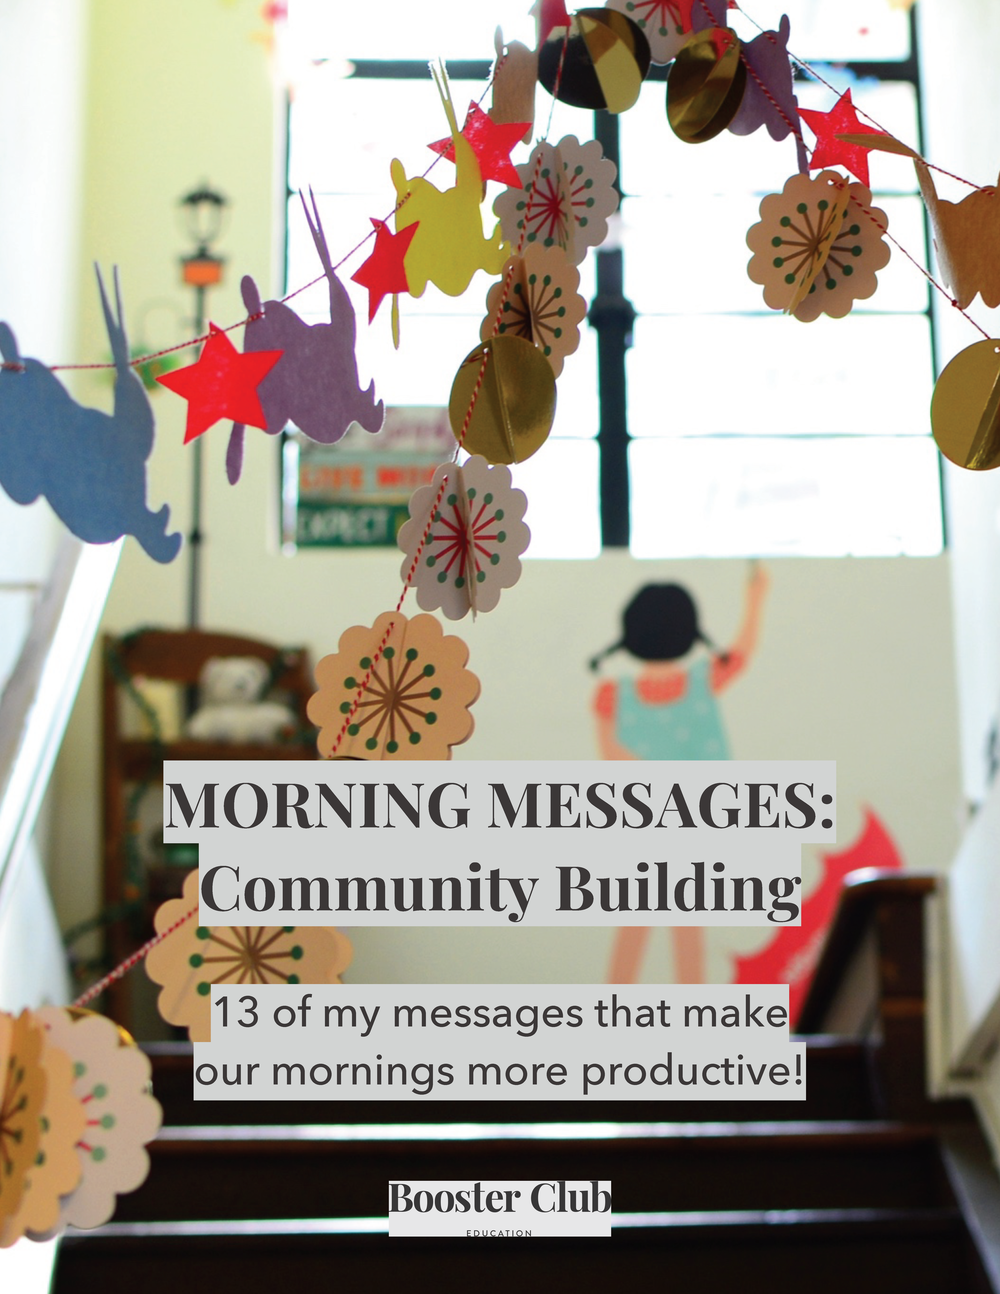 MORNING MESSAGES: Community Building